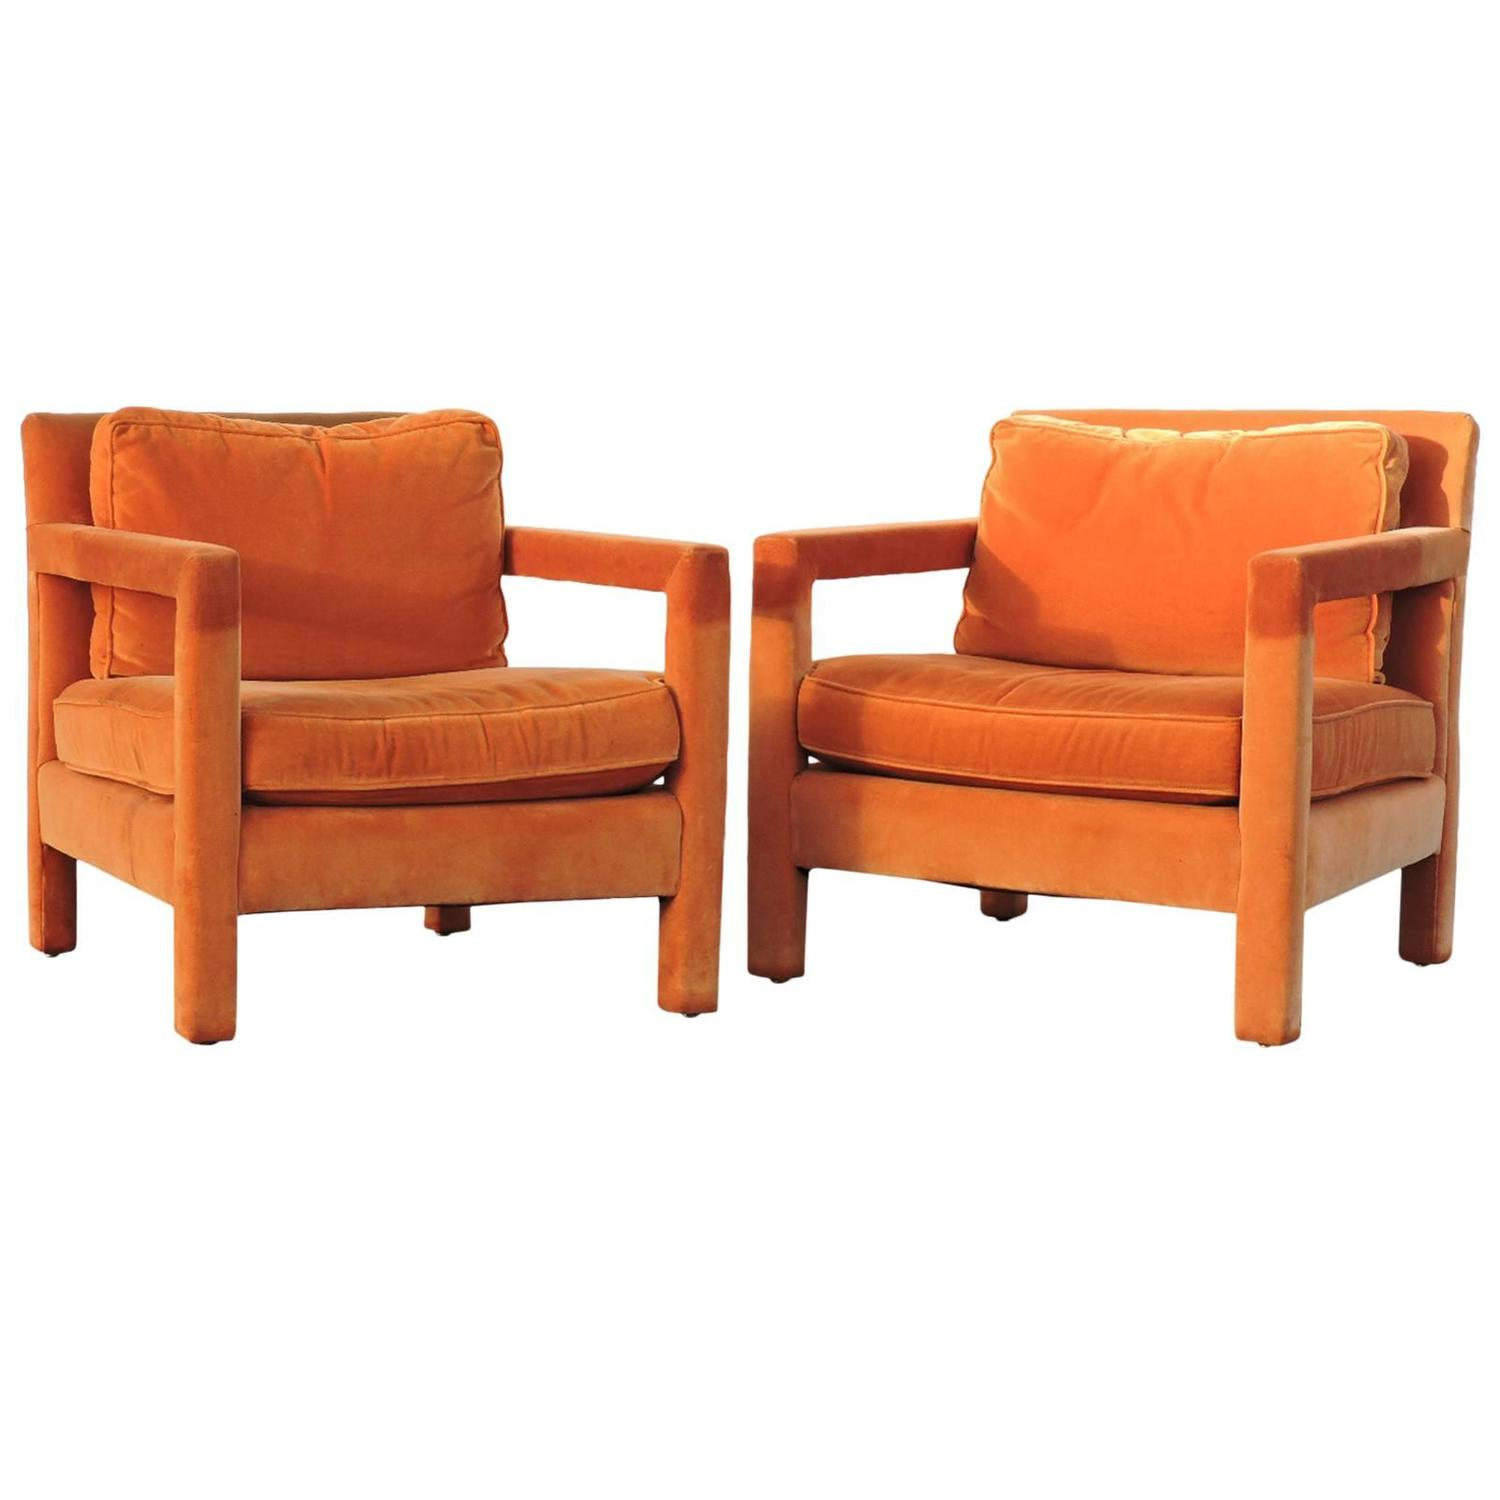 orange parsons chair rolling dining chairs with arms upholstered lounge in the style of